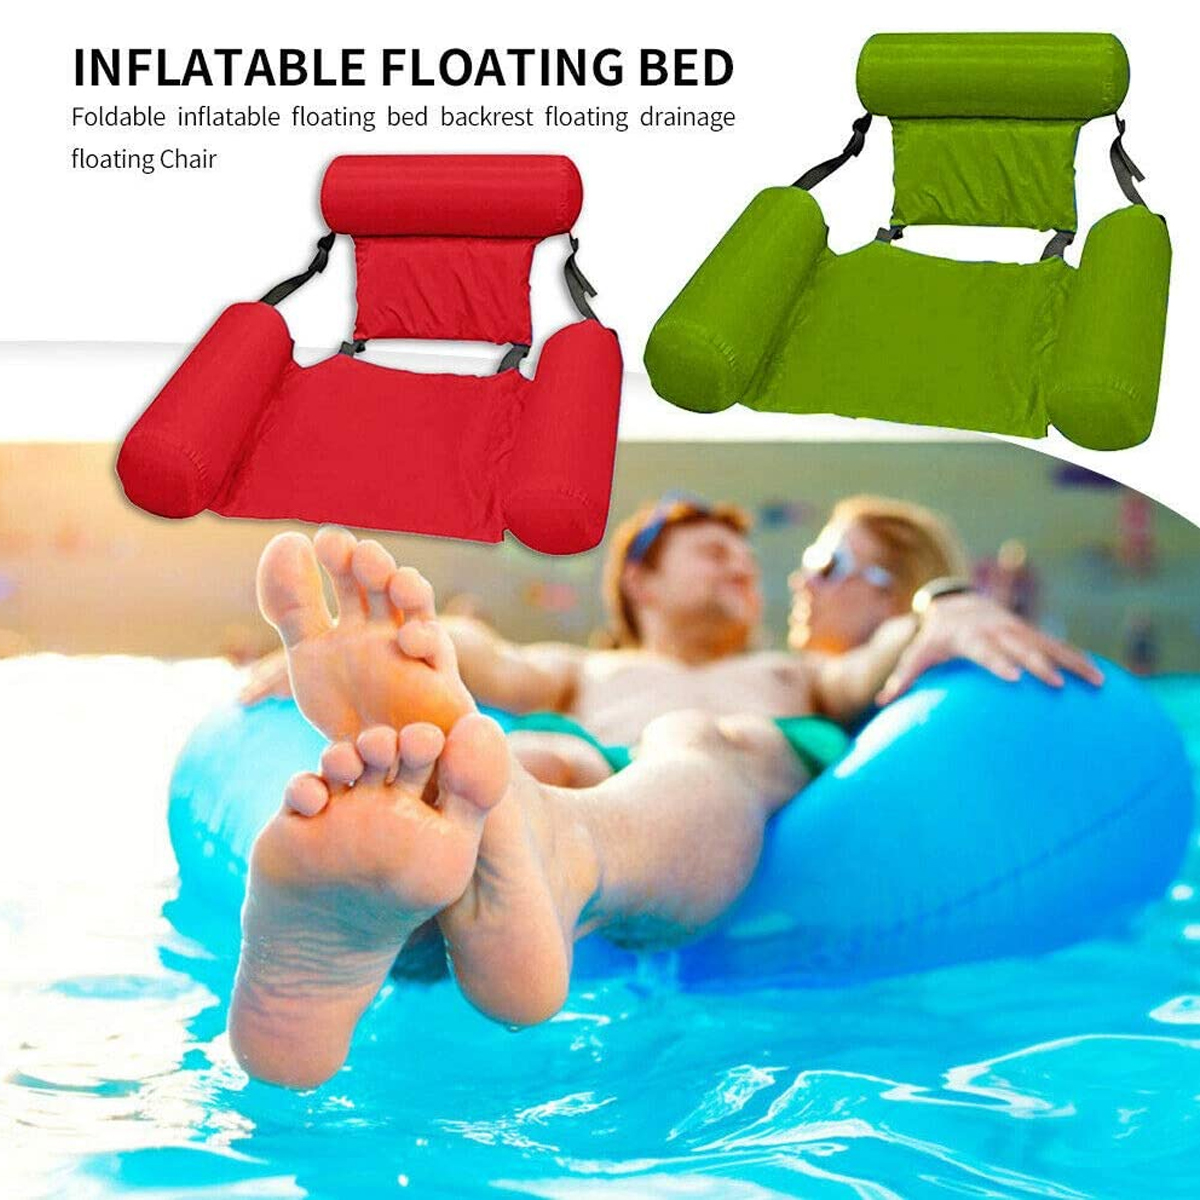 Water Lounge Chair Summer Swimming Inflatable Foldable Floating Row Backrest Air Mat Party Pool Toy 6